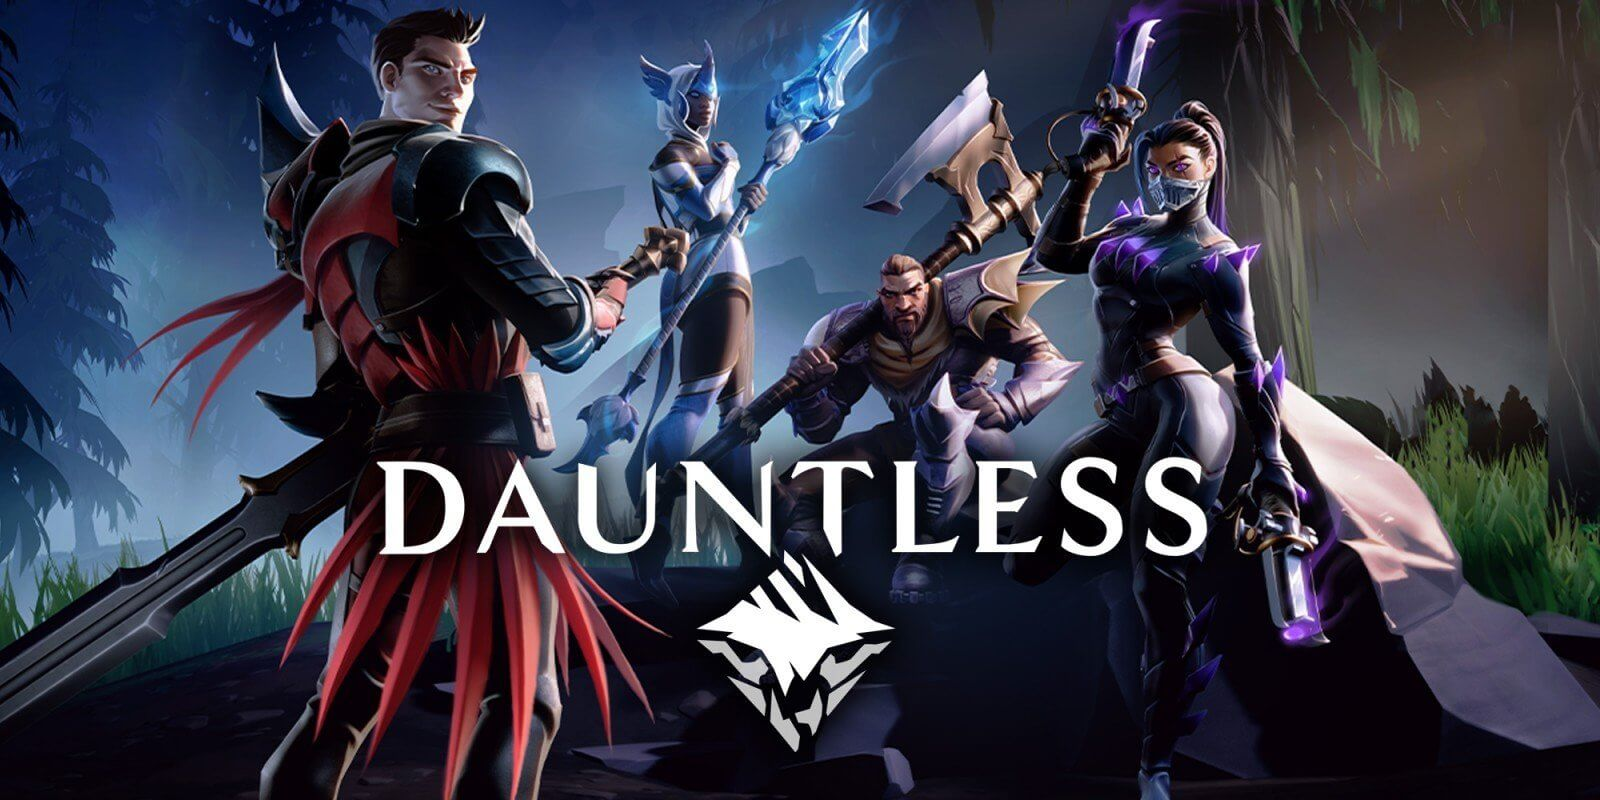 Dauntless Update Version 1.14  Patch Notes 1.0.1 For PS4, PC and Xbox One.